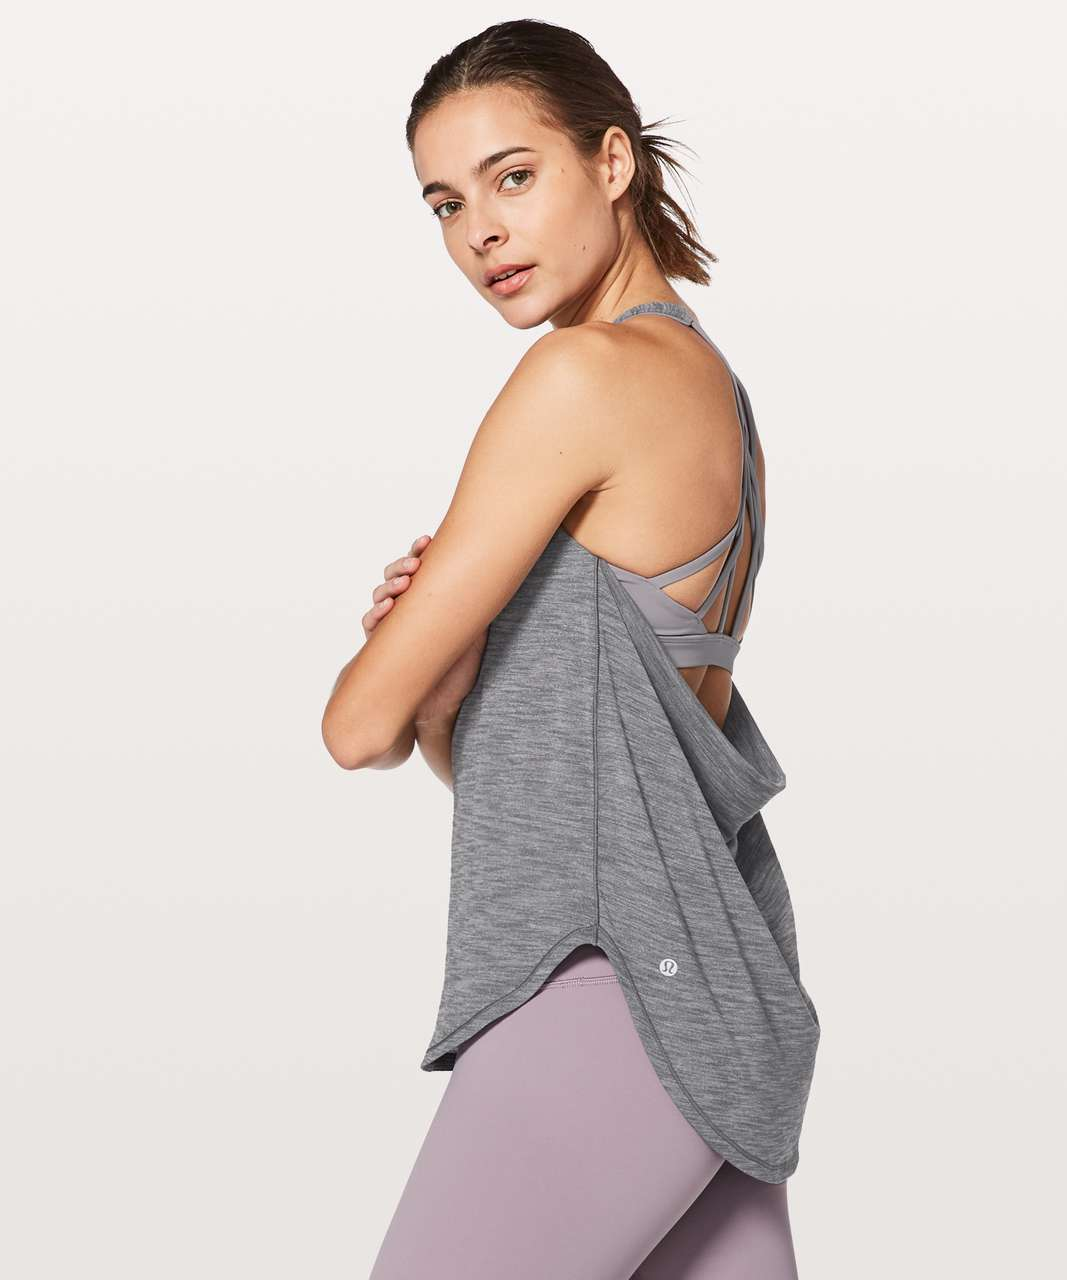 f3ec490c6 Lululemon Free To Be Serene Tank (2 In 1)  Medium Support For C D Cup -  Heathered Nebula   Dusty Dawn - lulu fanatics